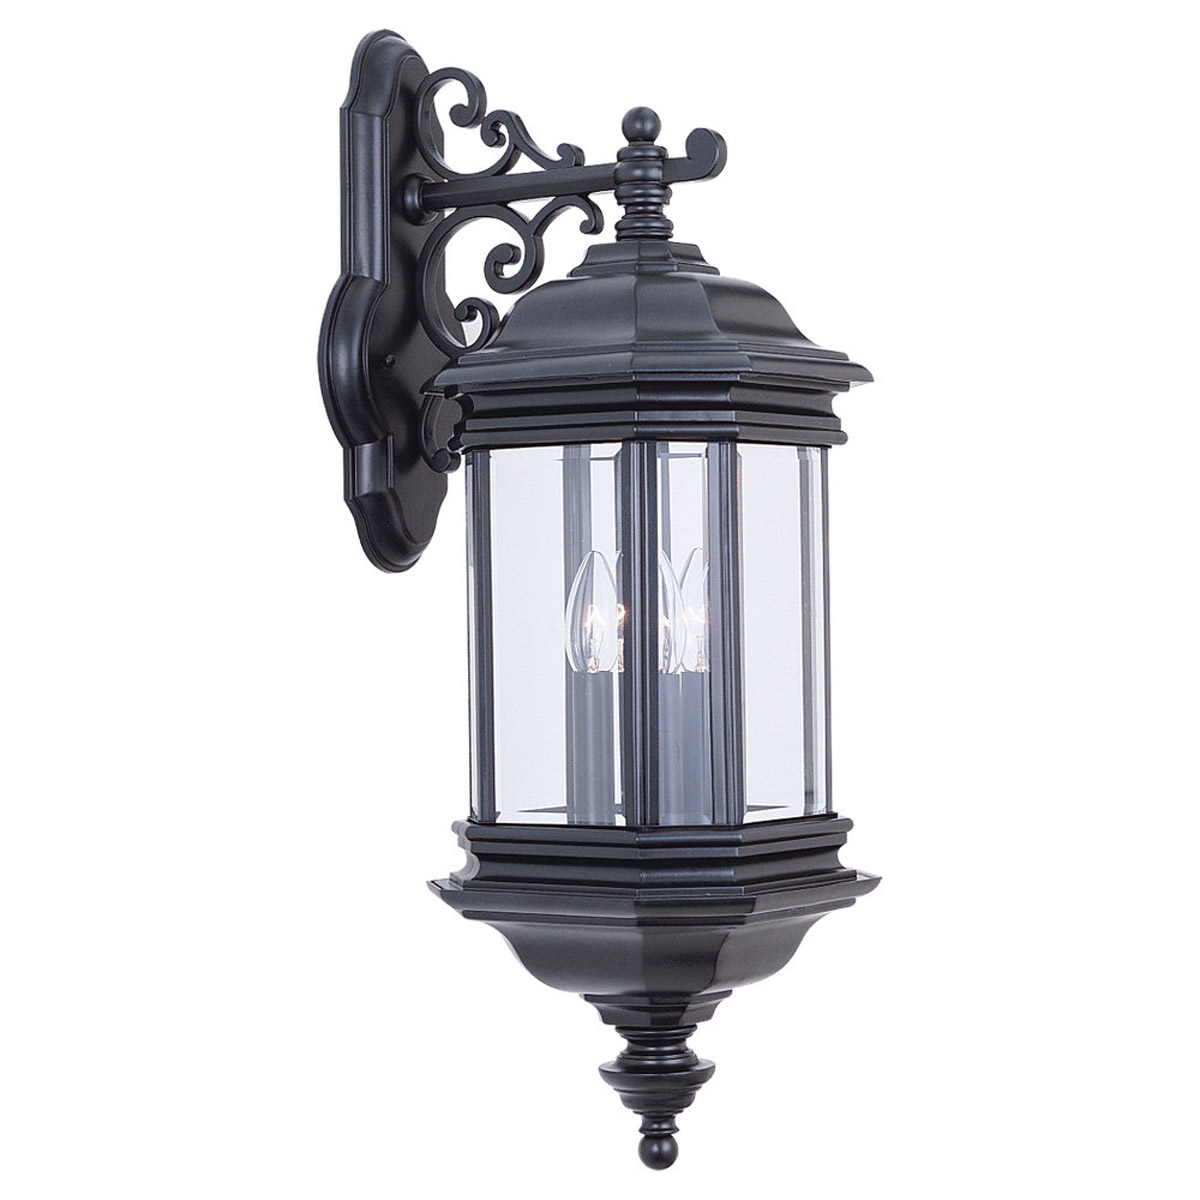 Sea Gull Lighting Hill Gate 3 Light Outdoor Wall Lantern in Black 8841-12